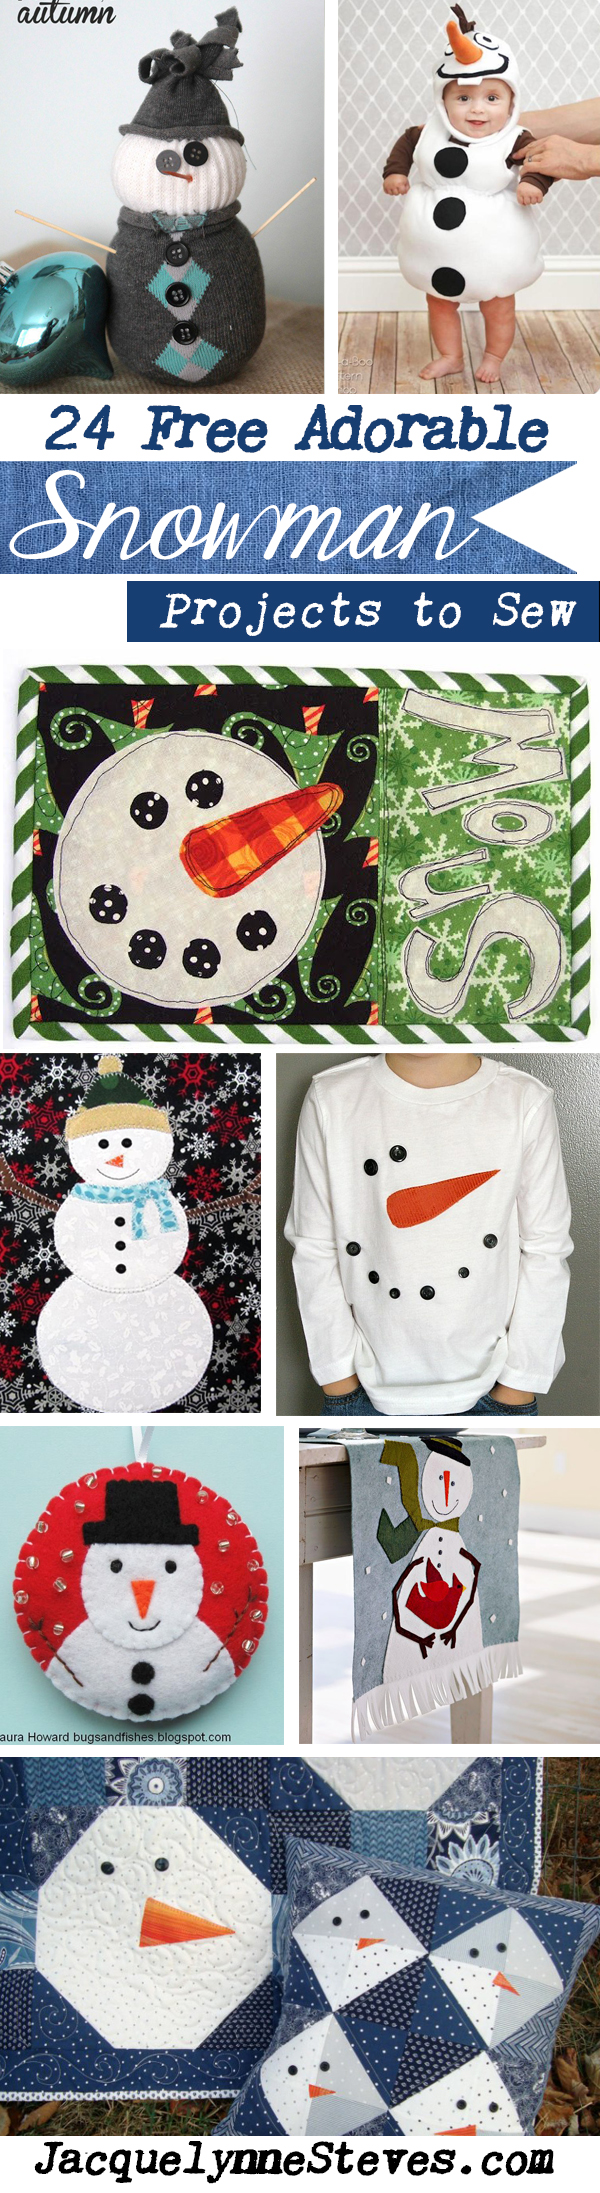 24 Free Snowman Projects to Sew